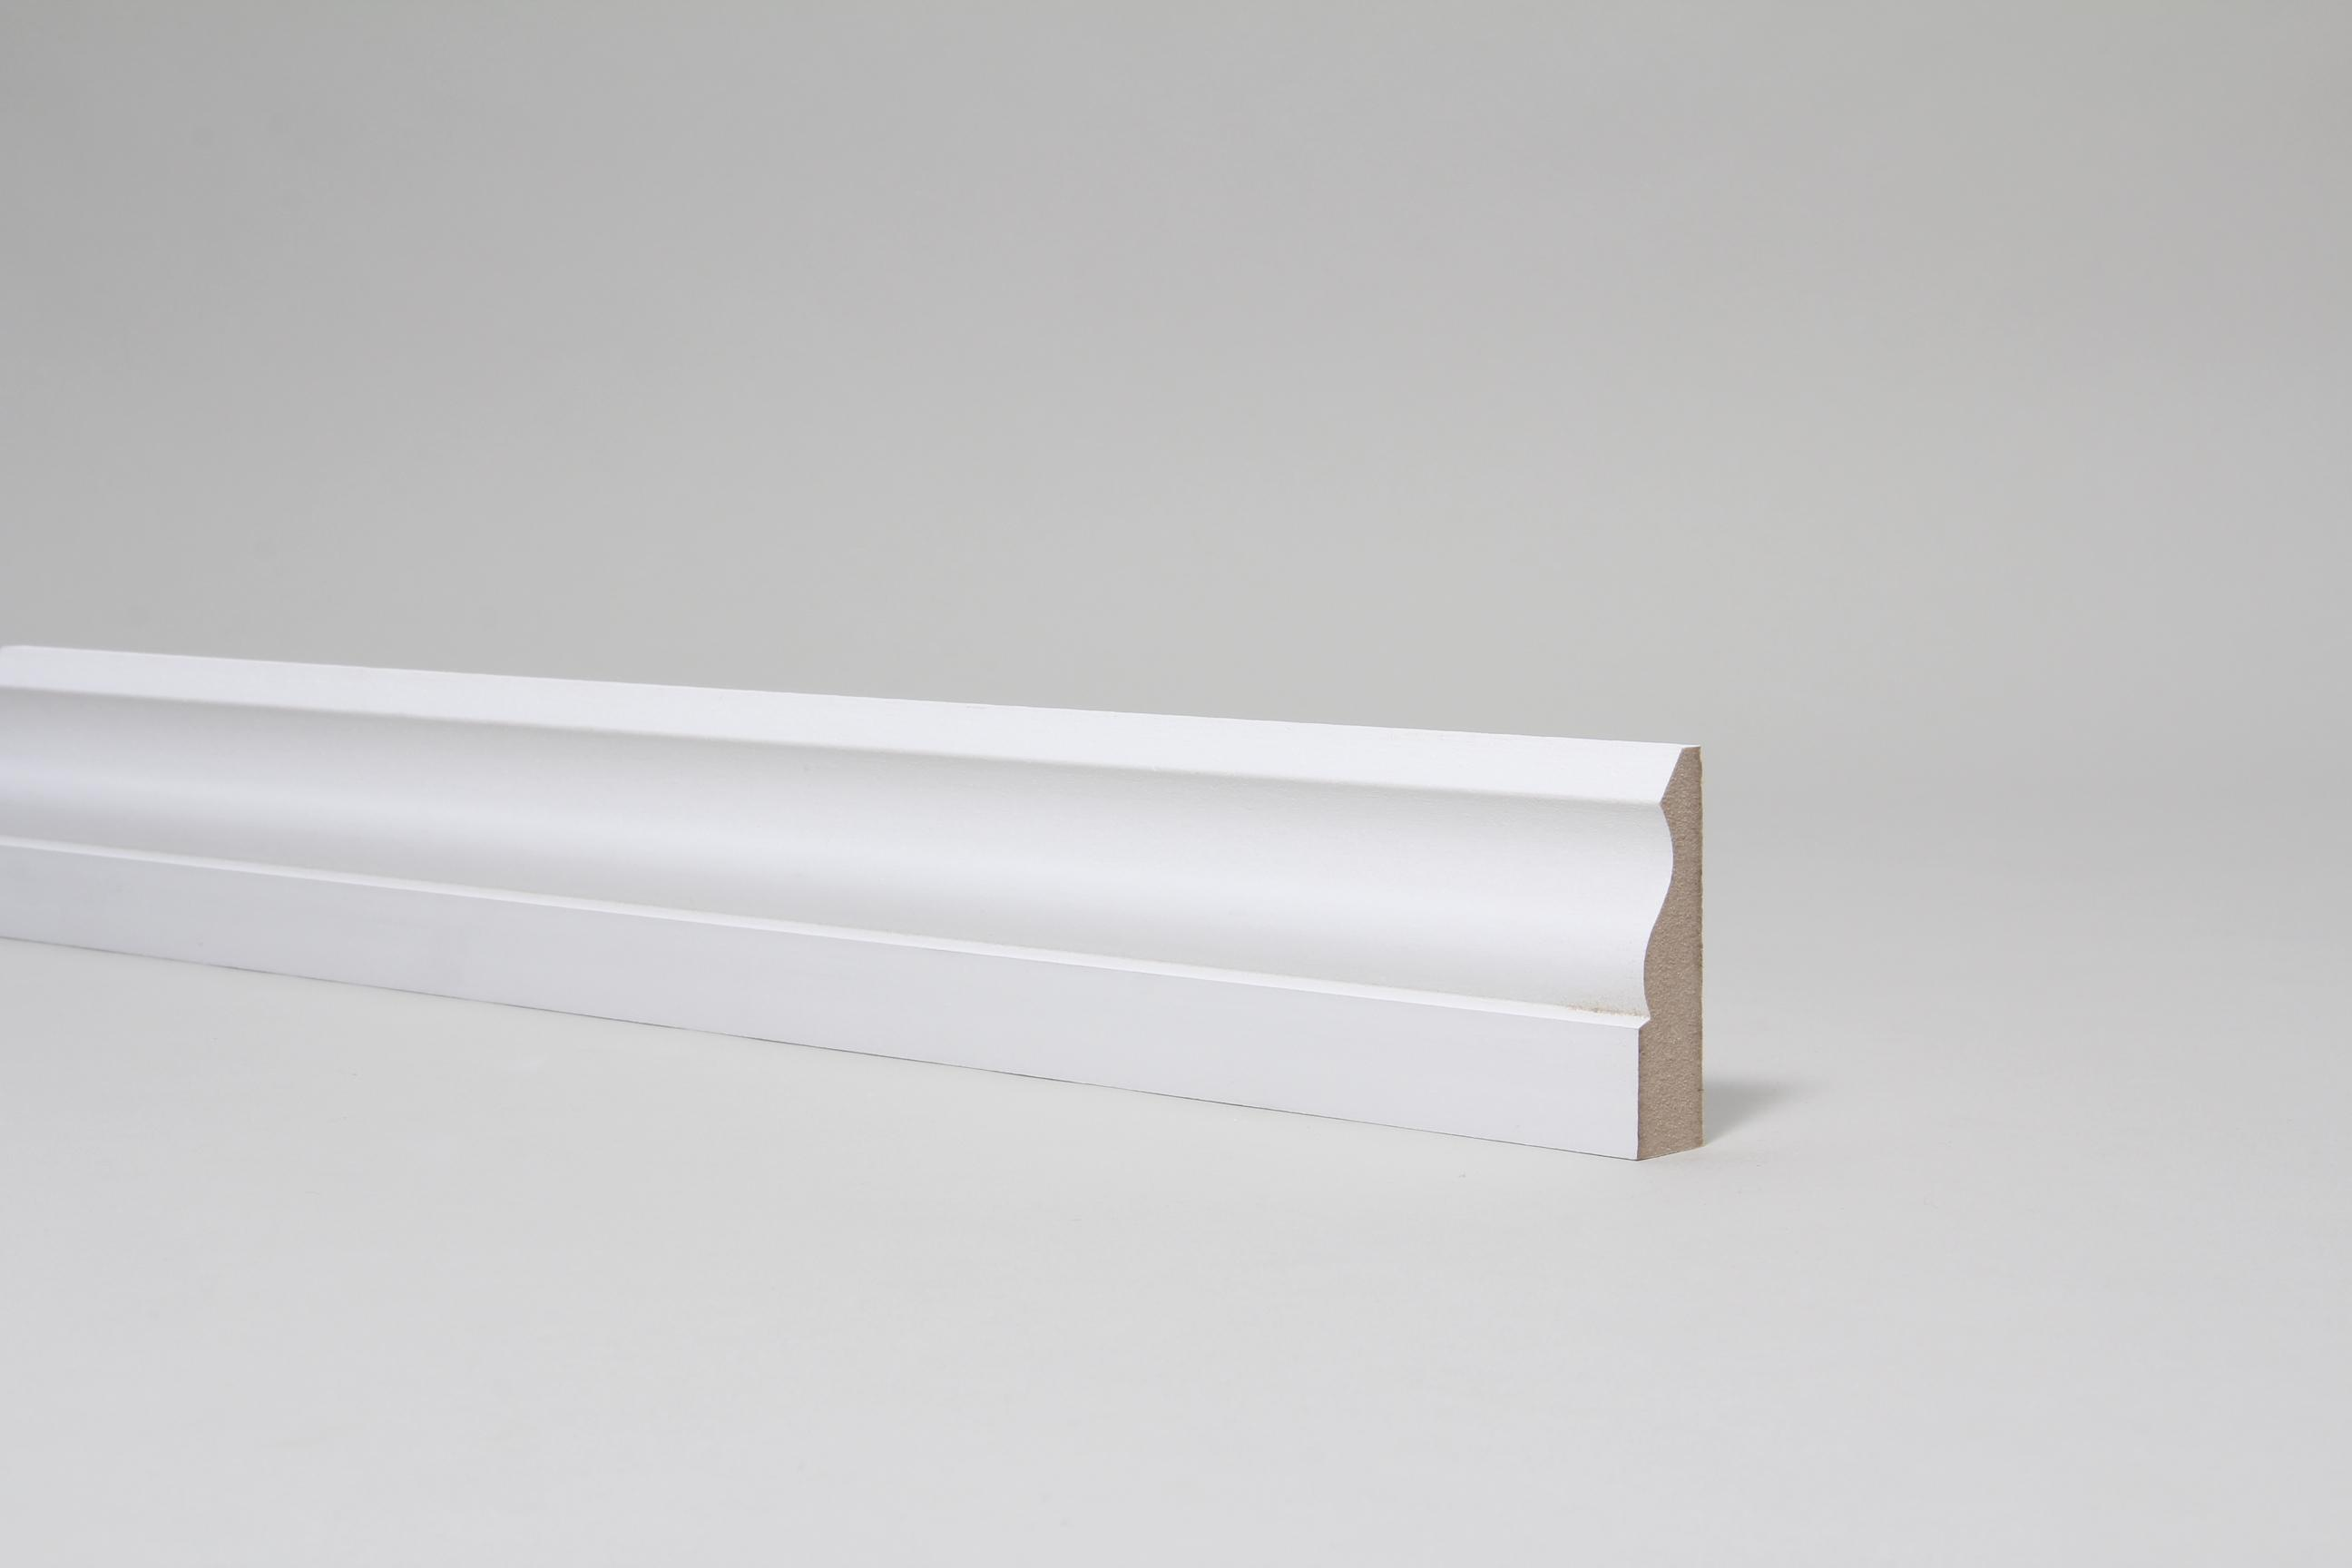 Ogee 18mm x 68mm Architrave Set Primed